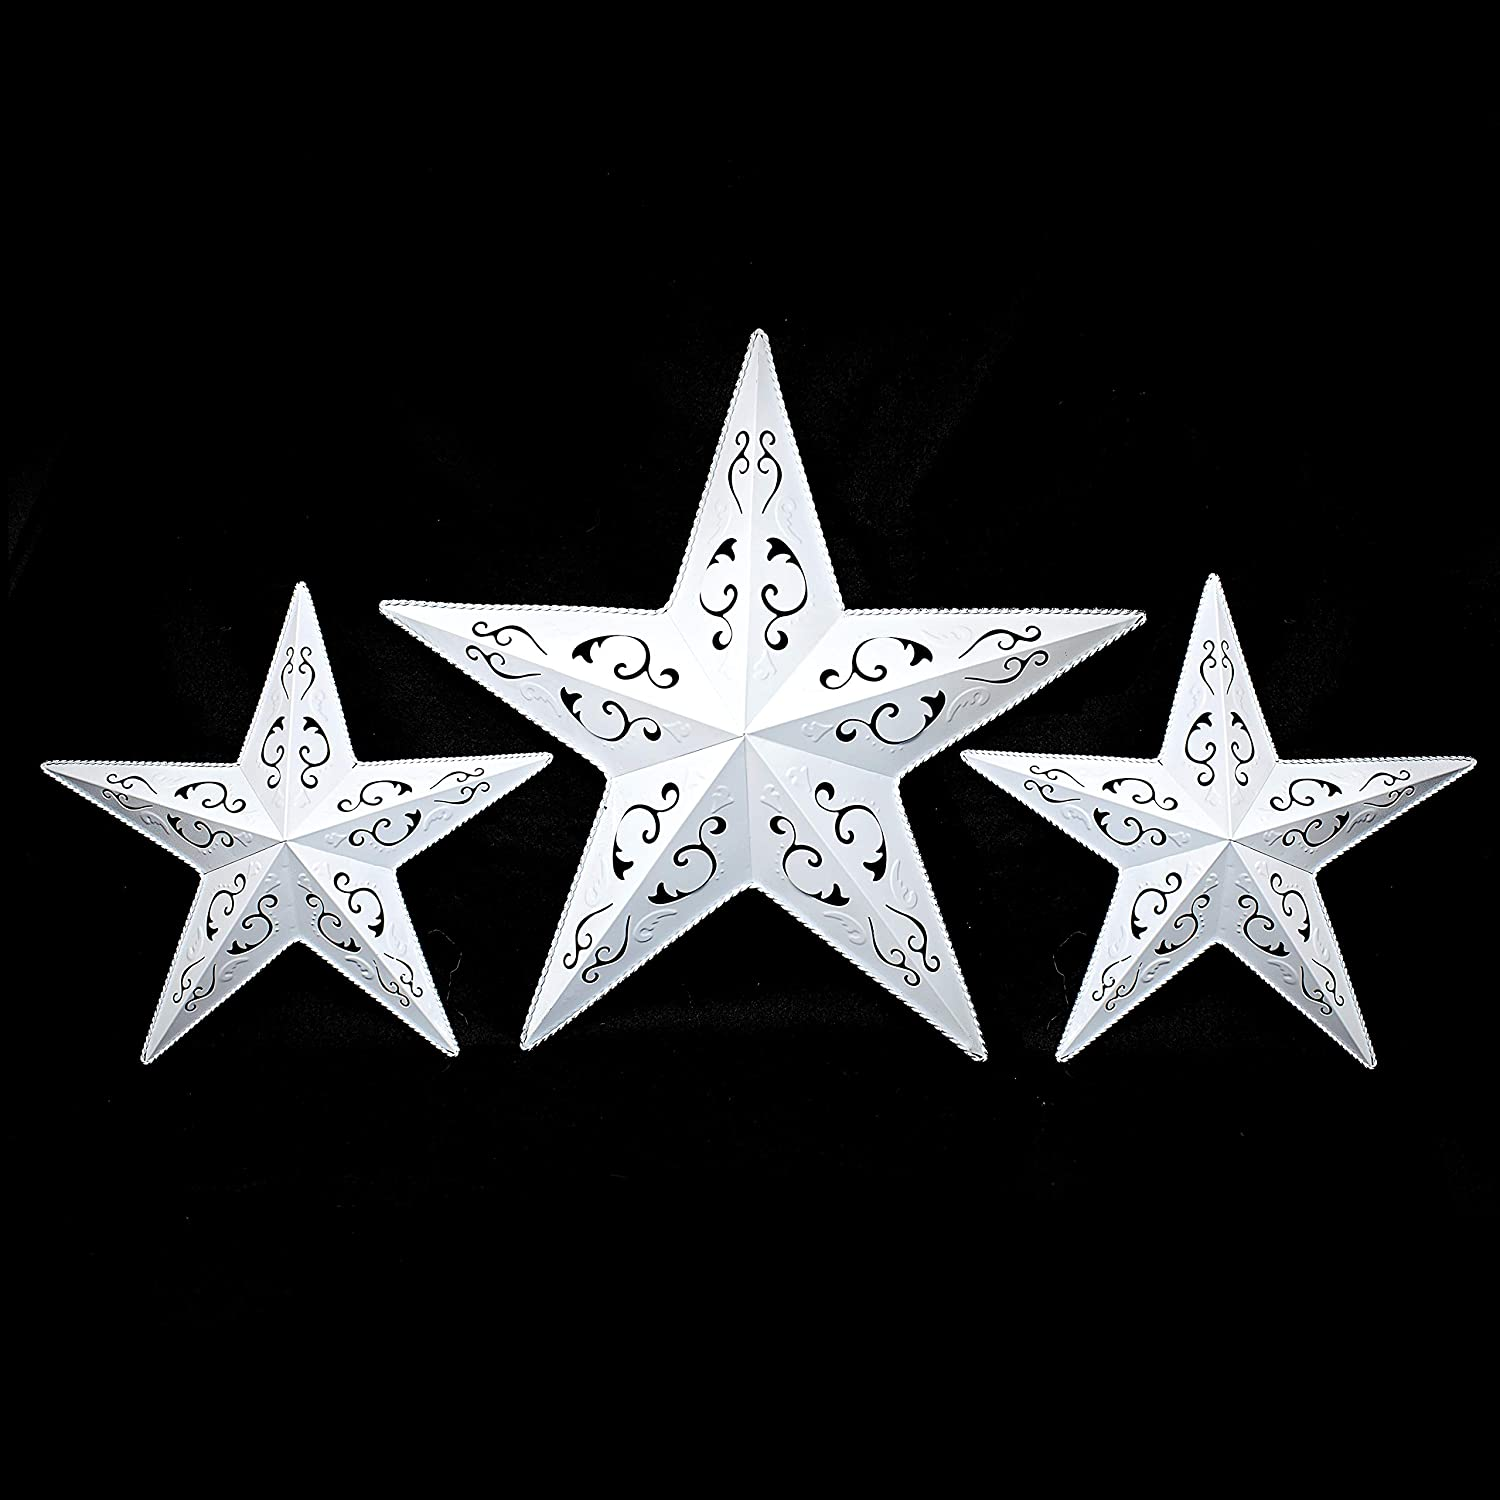 "WHITE LACY METAL BARN STAR SET - 2 x 12"" 1 x 18"" rustic cut out style country indoor outdoor Christmas home decor. Interior exterior lacey metal stars hanging decorations for house walls fence porch"